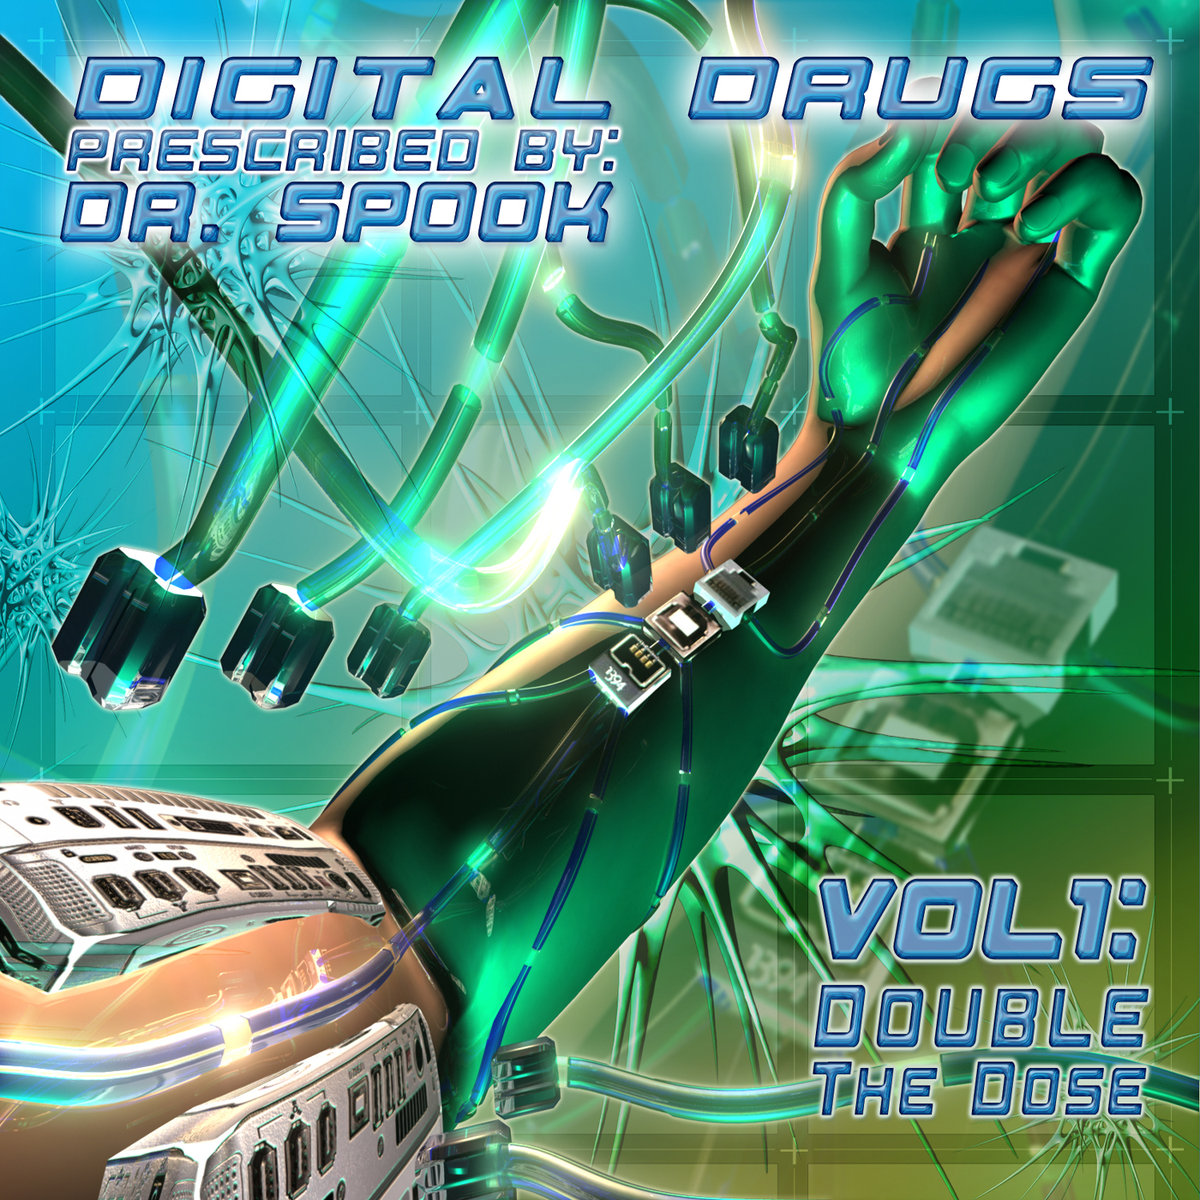 SnackShop (Airi & Fabiuz) - Snack Shop @ 'Various Artists - Digital Drugs Vol.1: Double the Dose (Prescribed by Dr. Spook)' album (electronic, goa)